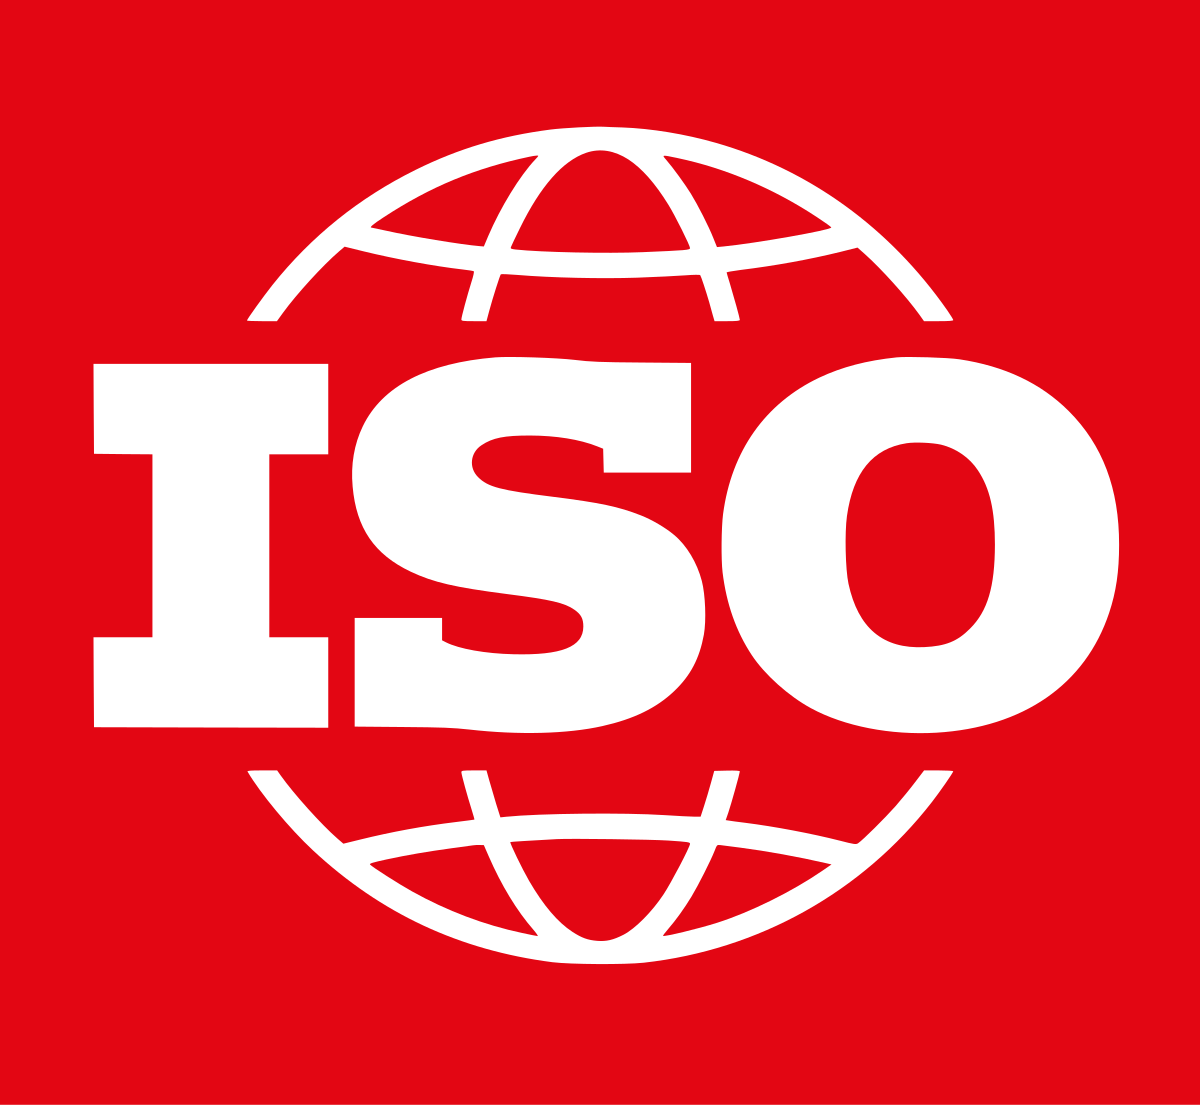 Ed Tuite appointed as Convenor to an ISO working group